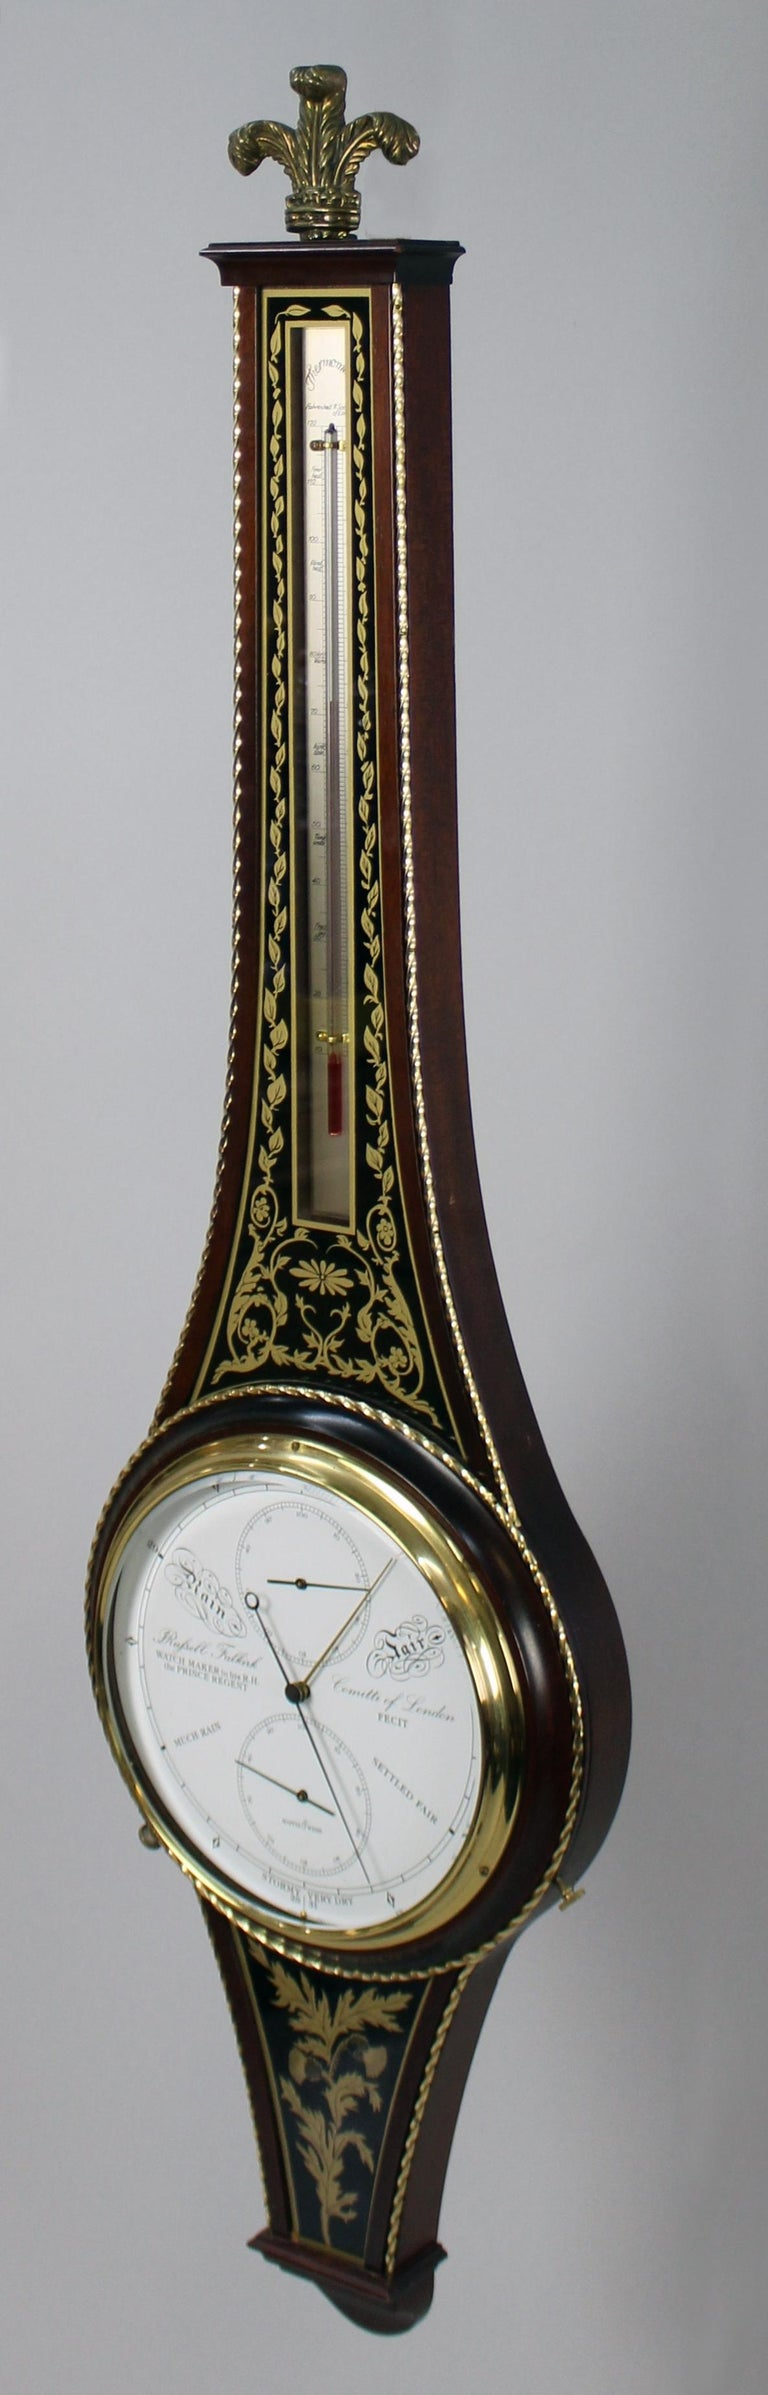 Period  Late 20th century  Maker  Comitti of London  Limited Edition  10 of 50, brass plaque to the reverse  Measures: Width  27 cm / 10 1/2 in  Height  101 cm / 39 3/4 in  Case  Mahogany brass inlaid case  Condition  Very good